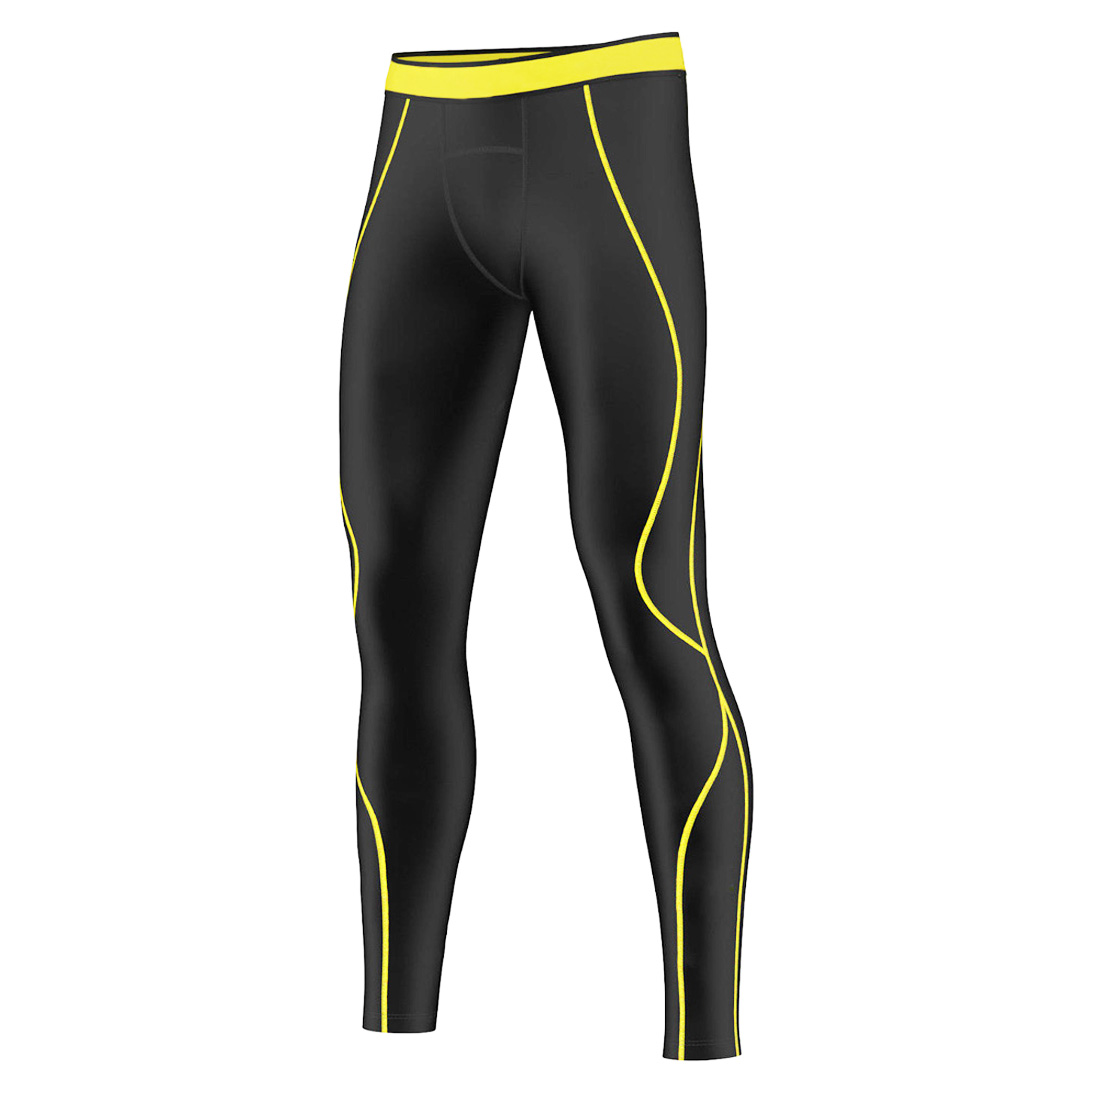 Mind Tights are comfortable running tights Men's Under Armour Storm Armour Fleece Icon Pant Men's Under Armour® Storm Armour Fleece Icon Pant::This web exclusive item ships separately within the continental U.S only.